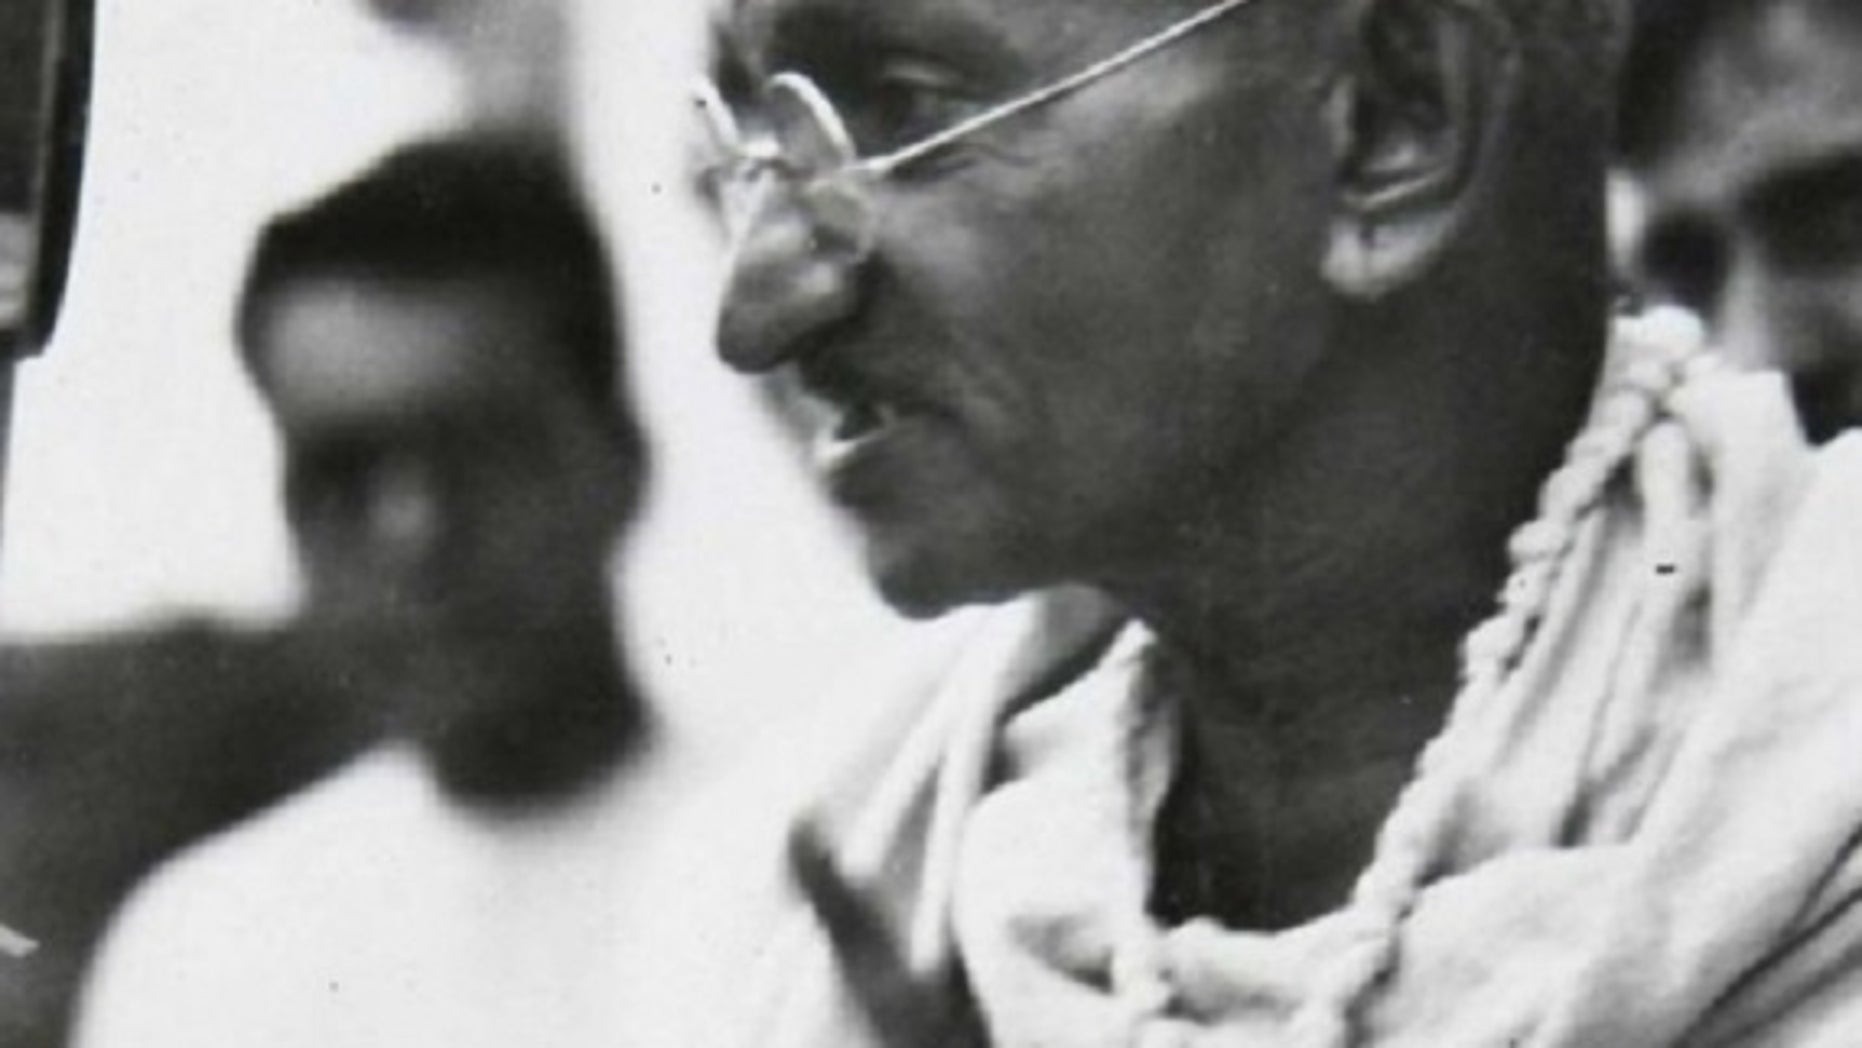 Mohandas K. Gandhi reportedly used a racial slur when referring to Africa's black population while he lived there, a report said.